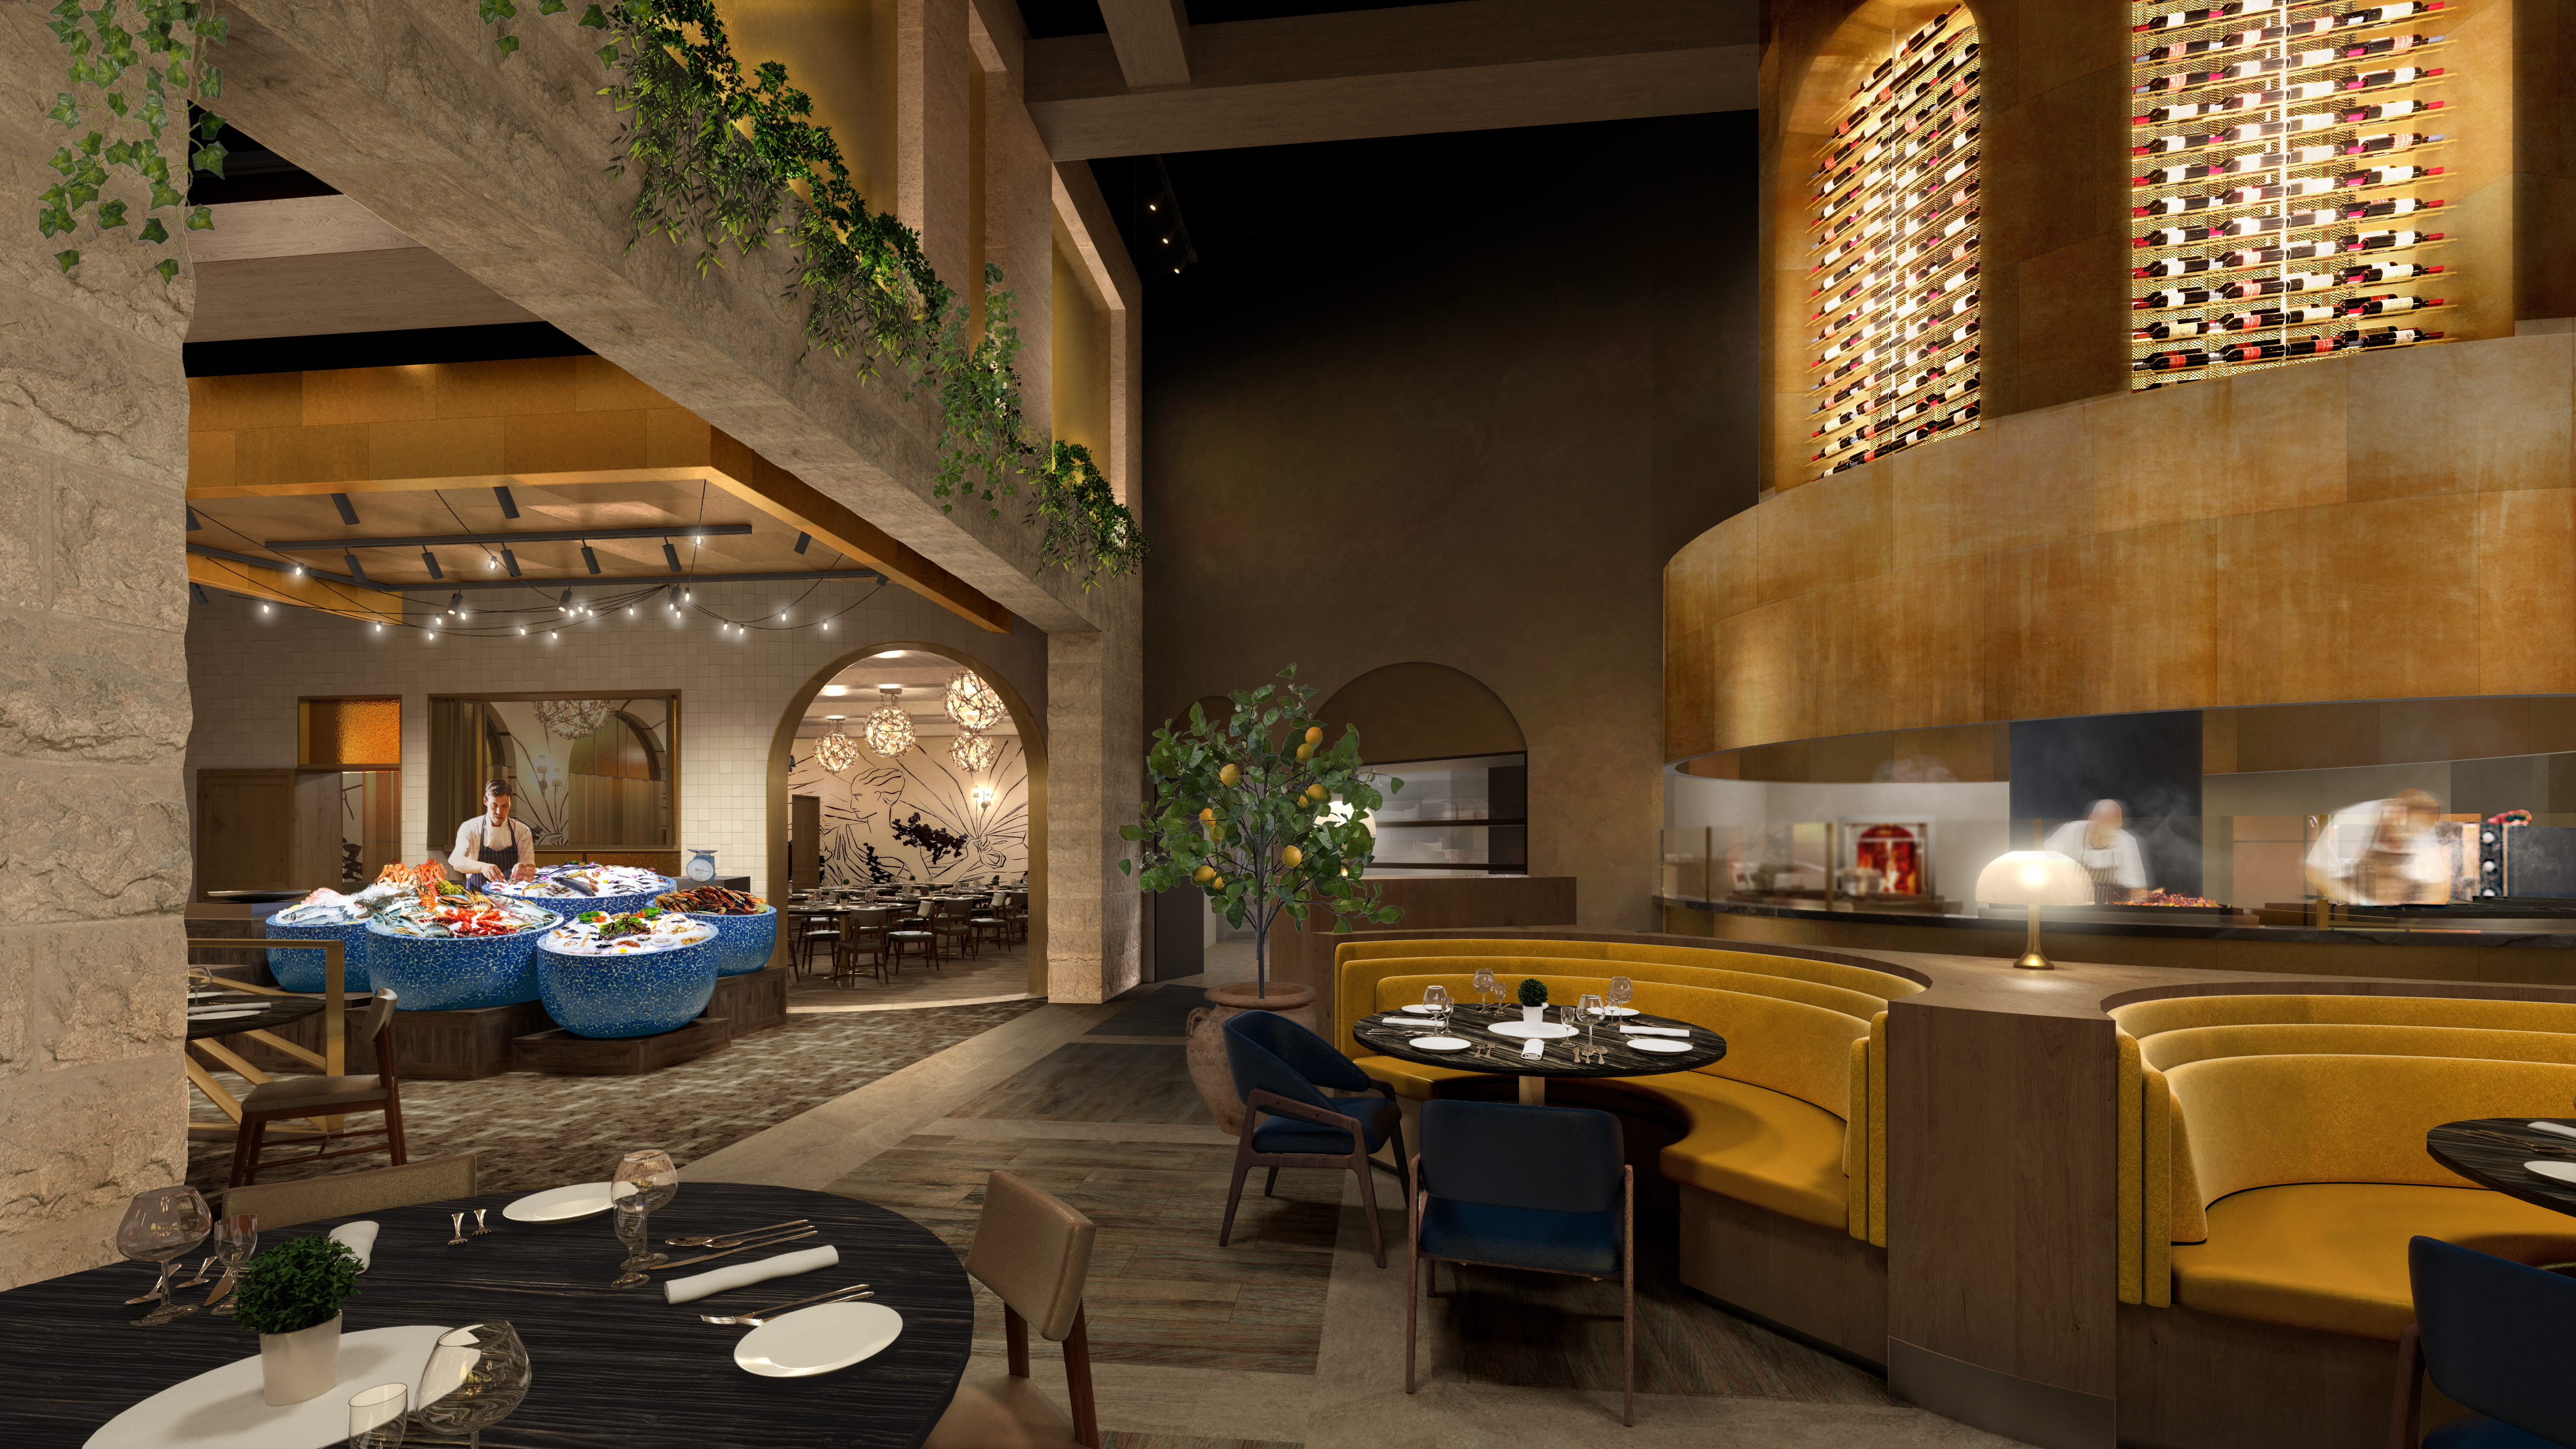 A rendering of a restaurant with woods and greens